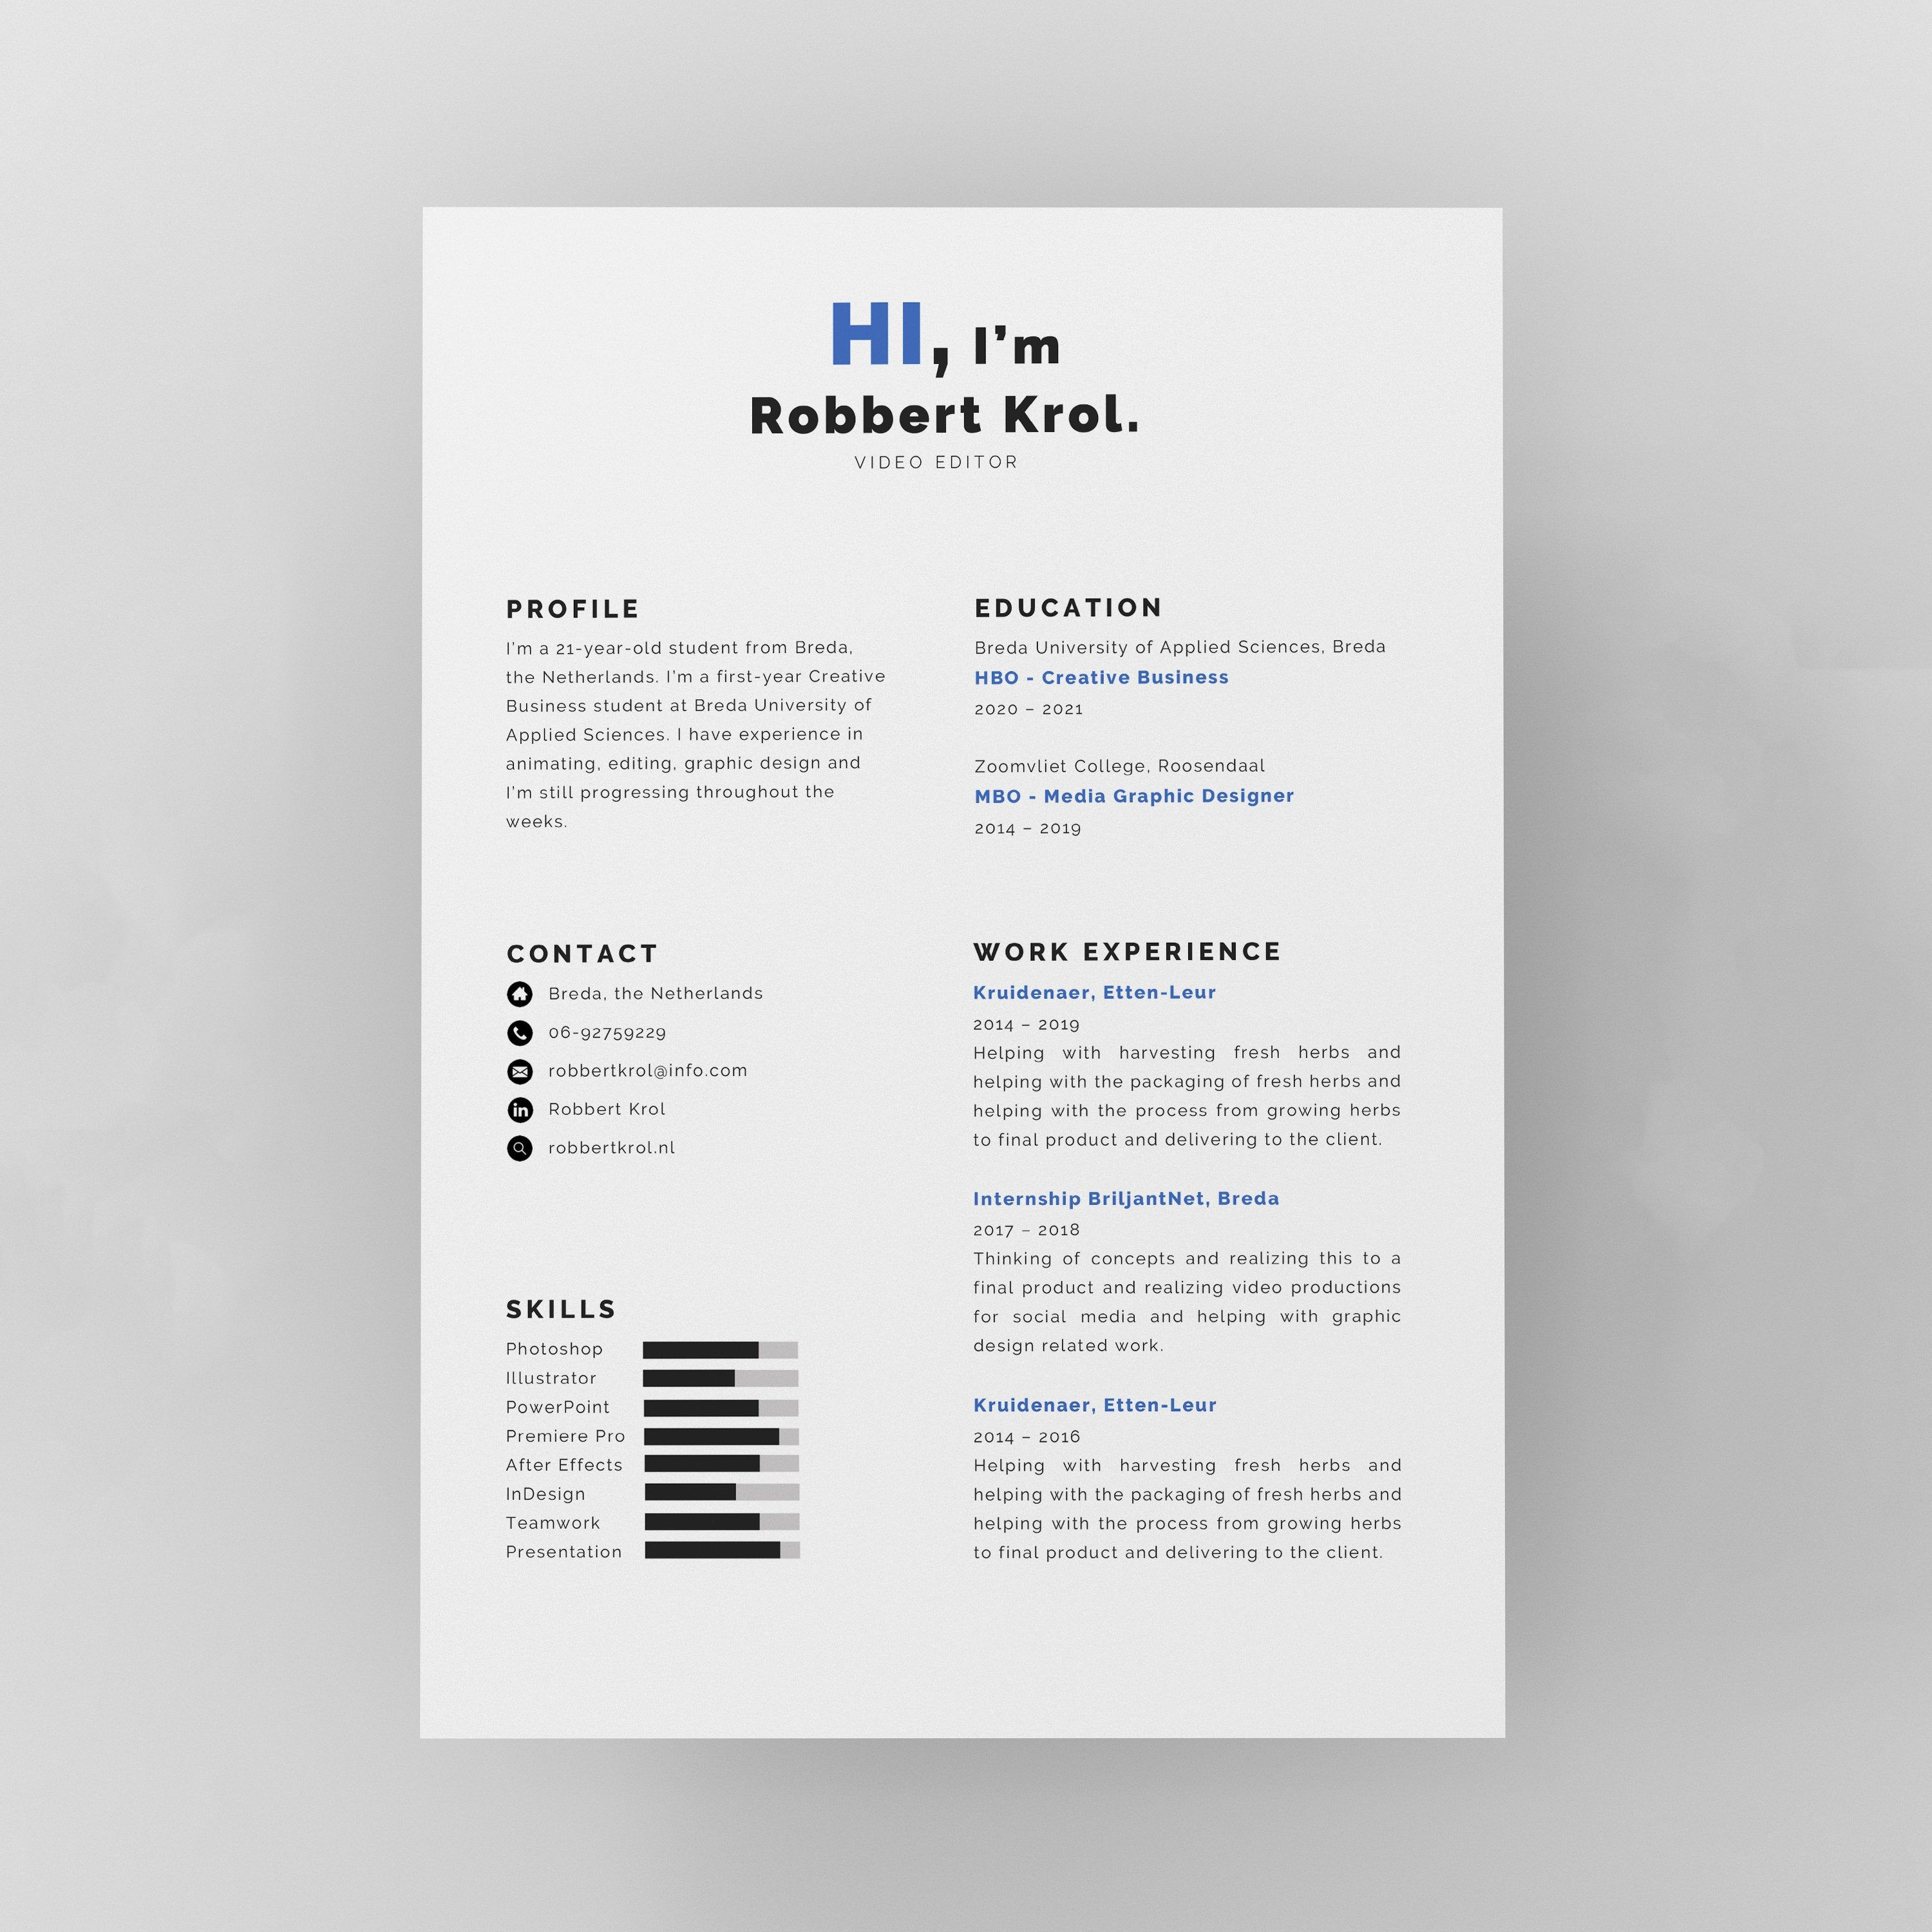 professional modern resume template, cv samples free download template word for freshers pdf